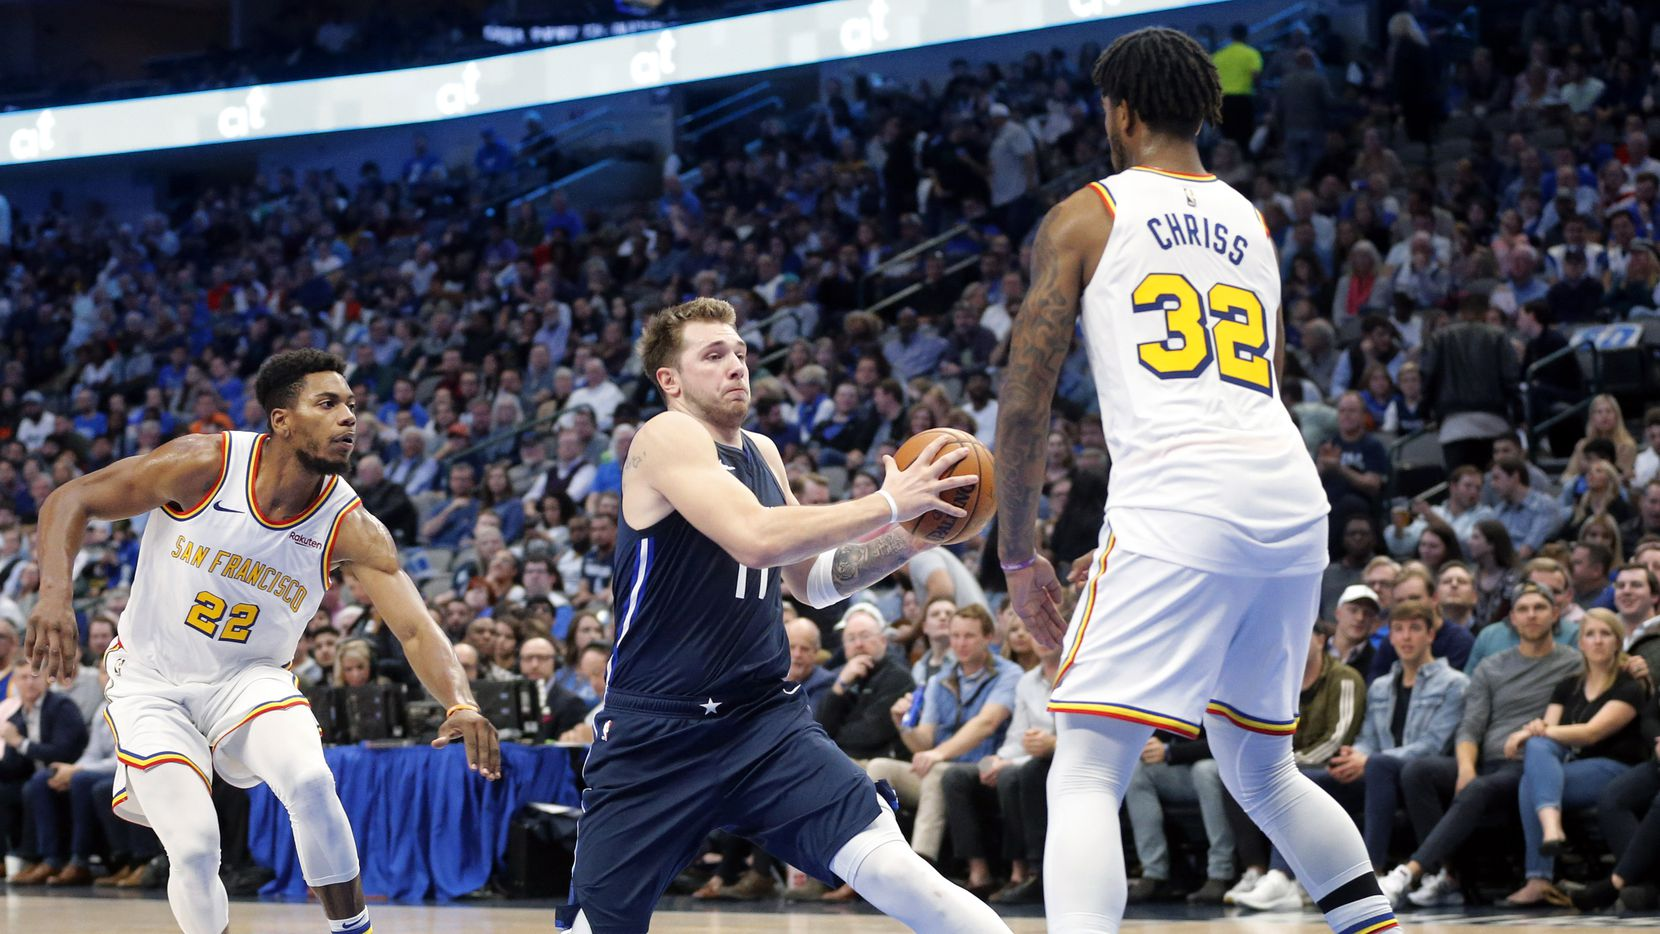 Dallas Mavericks forward Luka Doncic (77) makes a move on Golden State Warriors forward Marquese Chriss (32) for a second quarter layup at the American Airlines Center in Dallas, Wednesday, November 20, 2019. (Tom Fox/The Dallas Morning News)